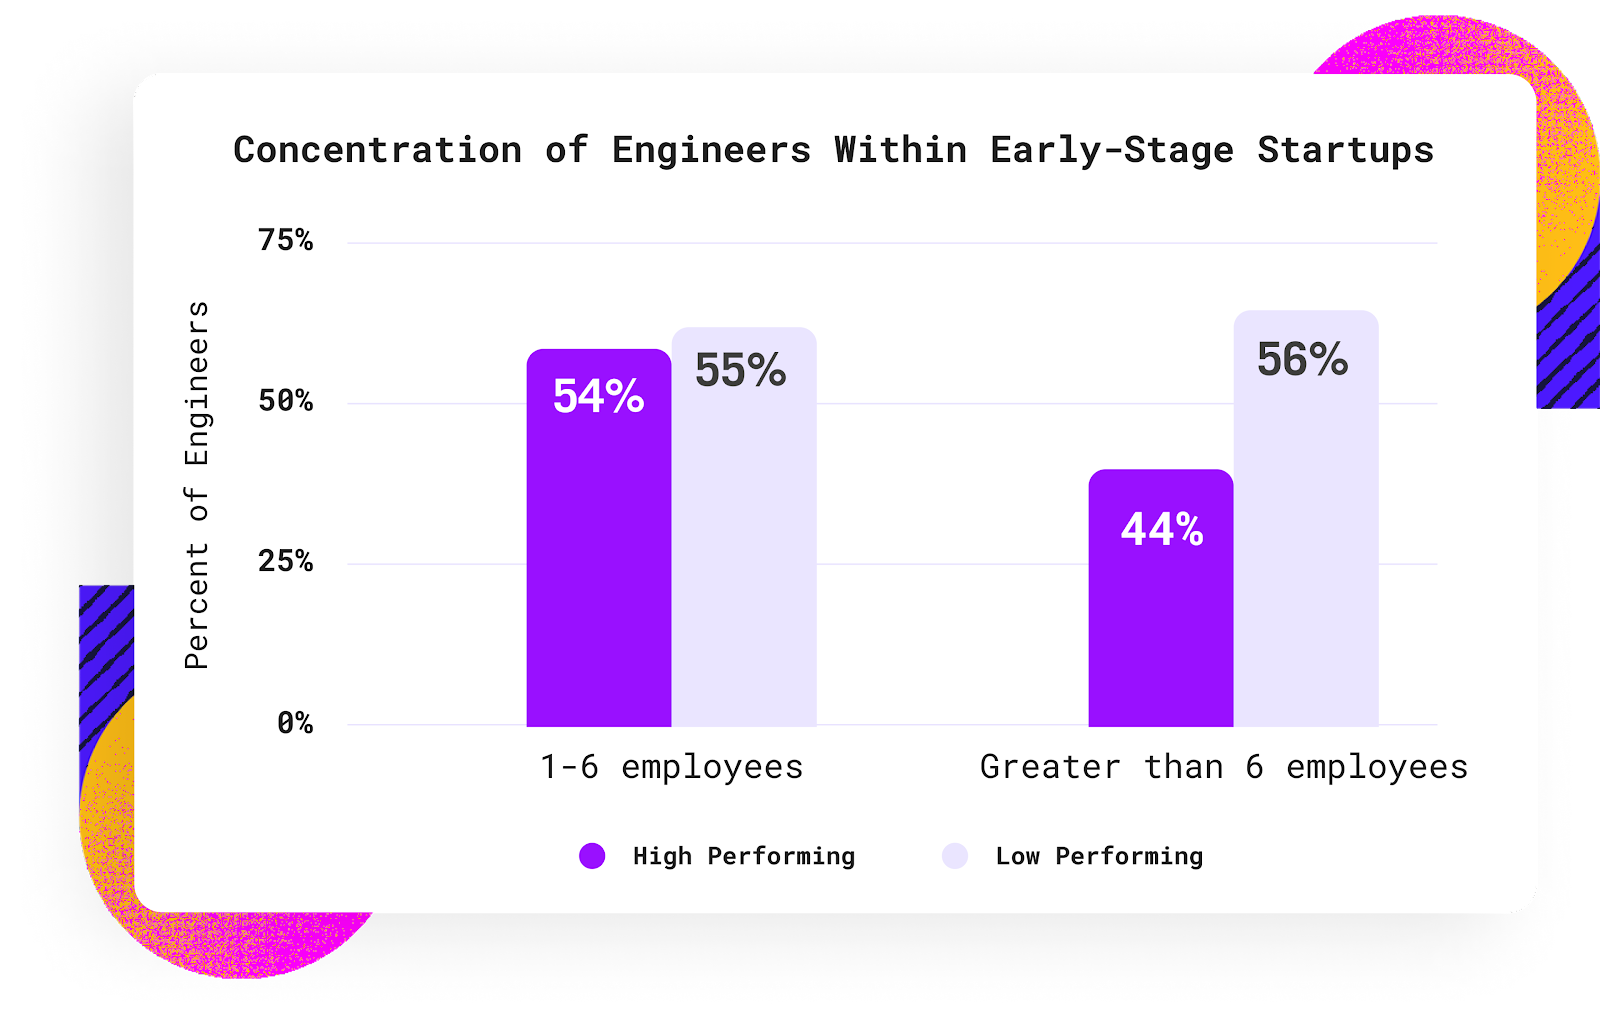 bar chart with concentration of engineers within early-stage startups data